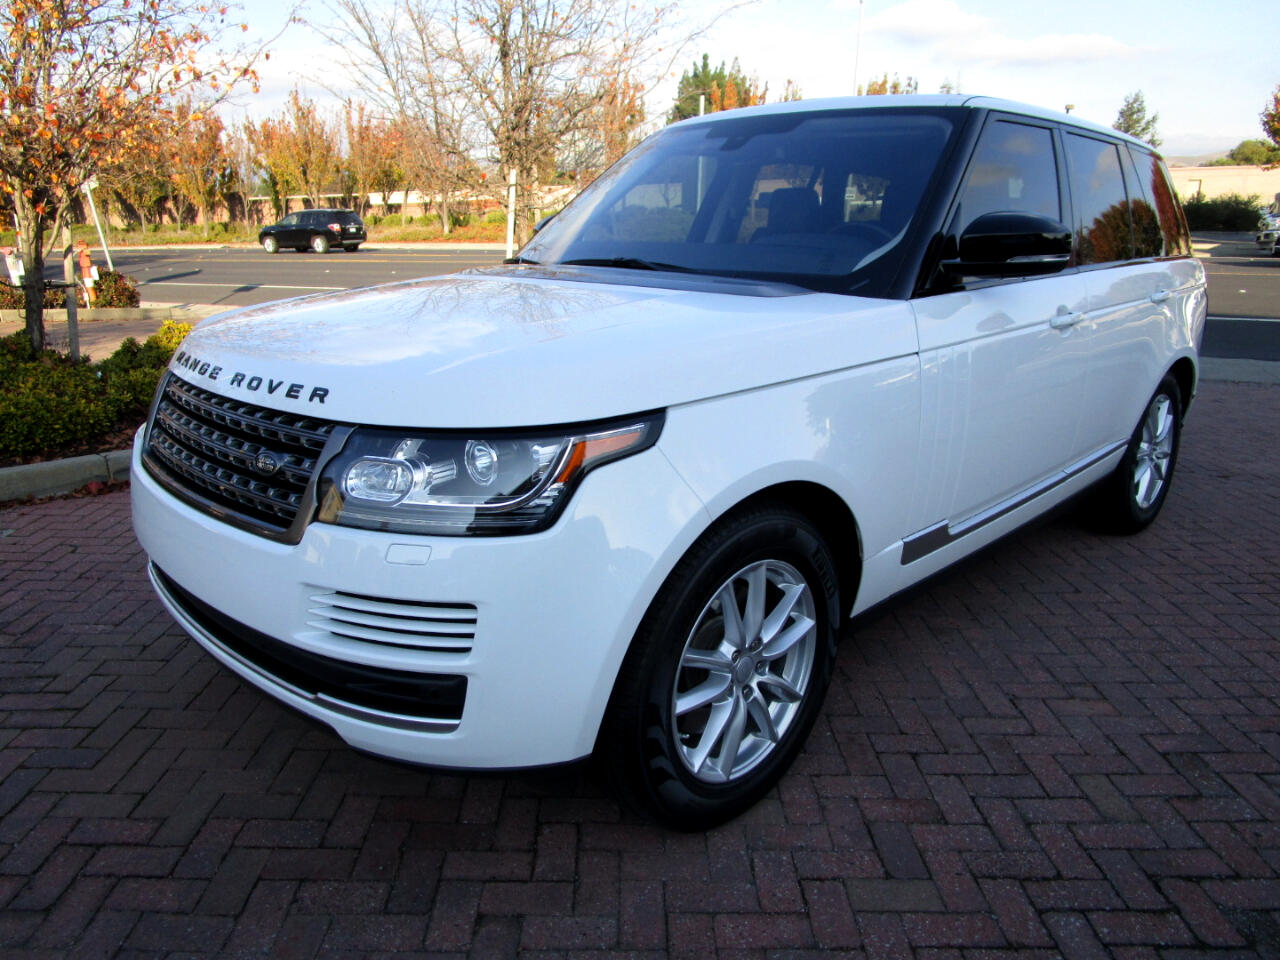 2016 Land Rover Range Rover SUPERCHARGED V6*PANO*MERIDIAN*HEAT SEATS/STR WHEEL